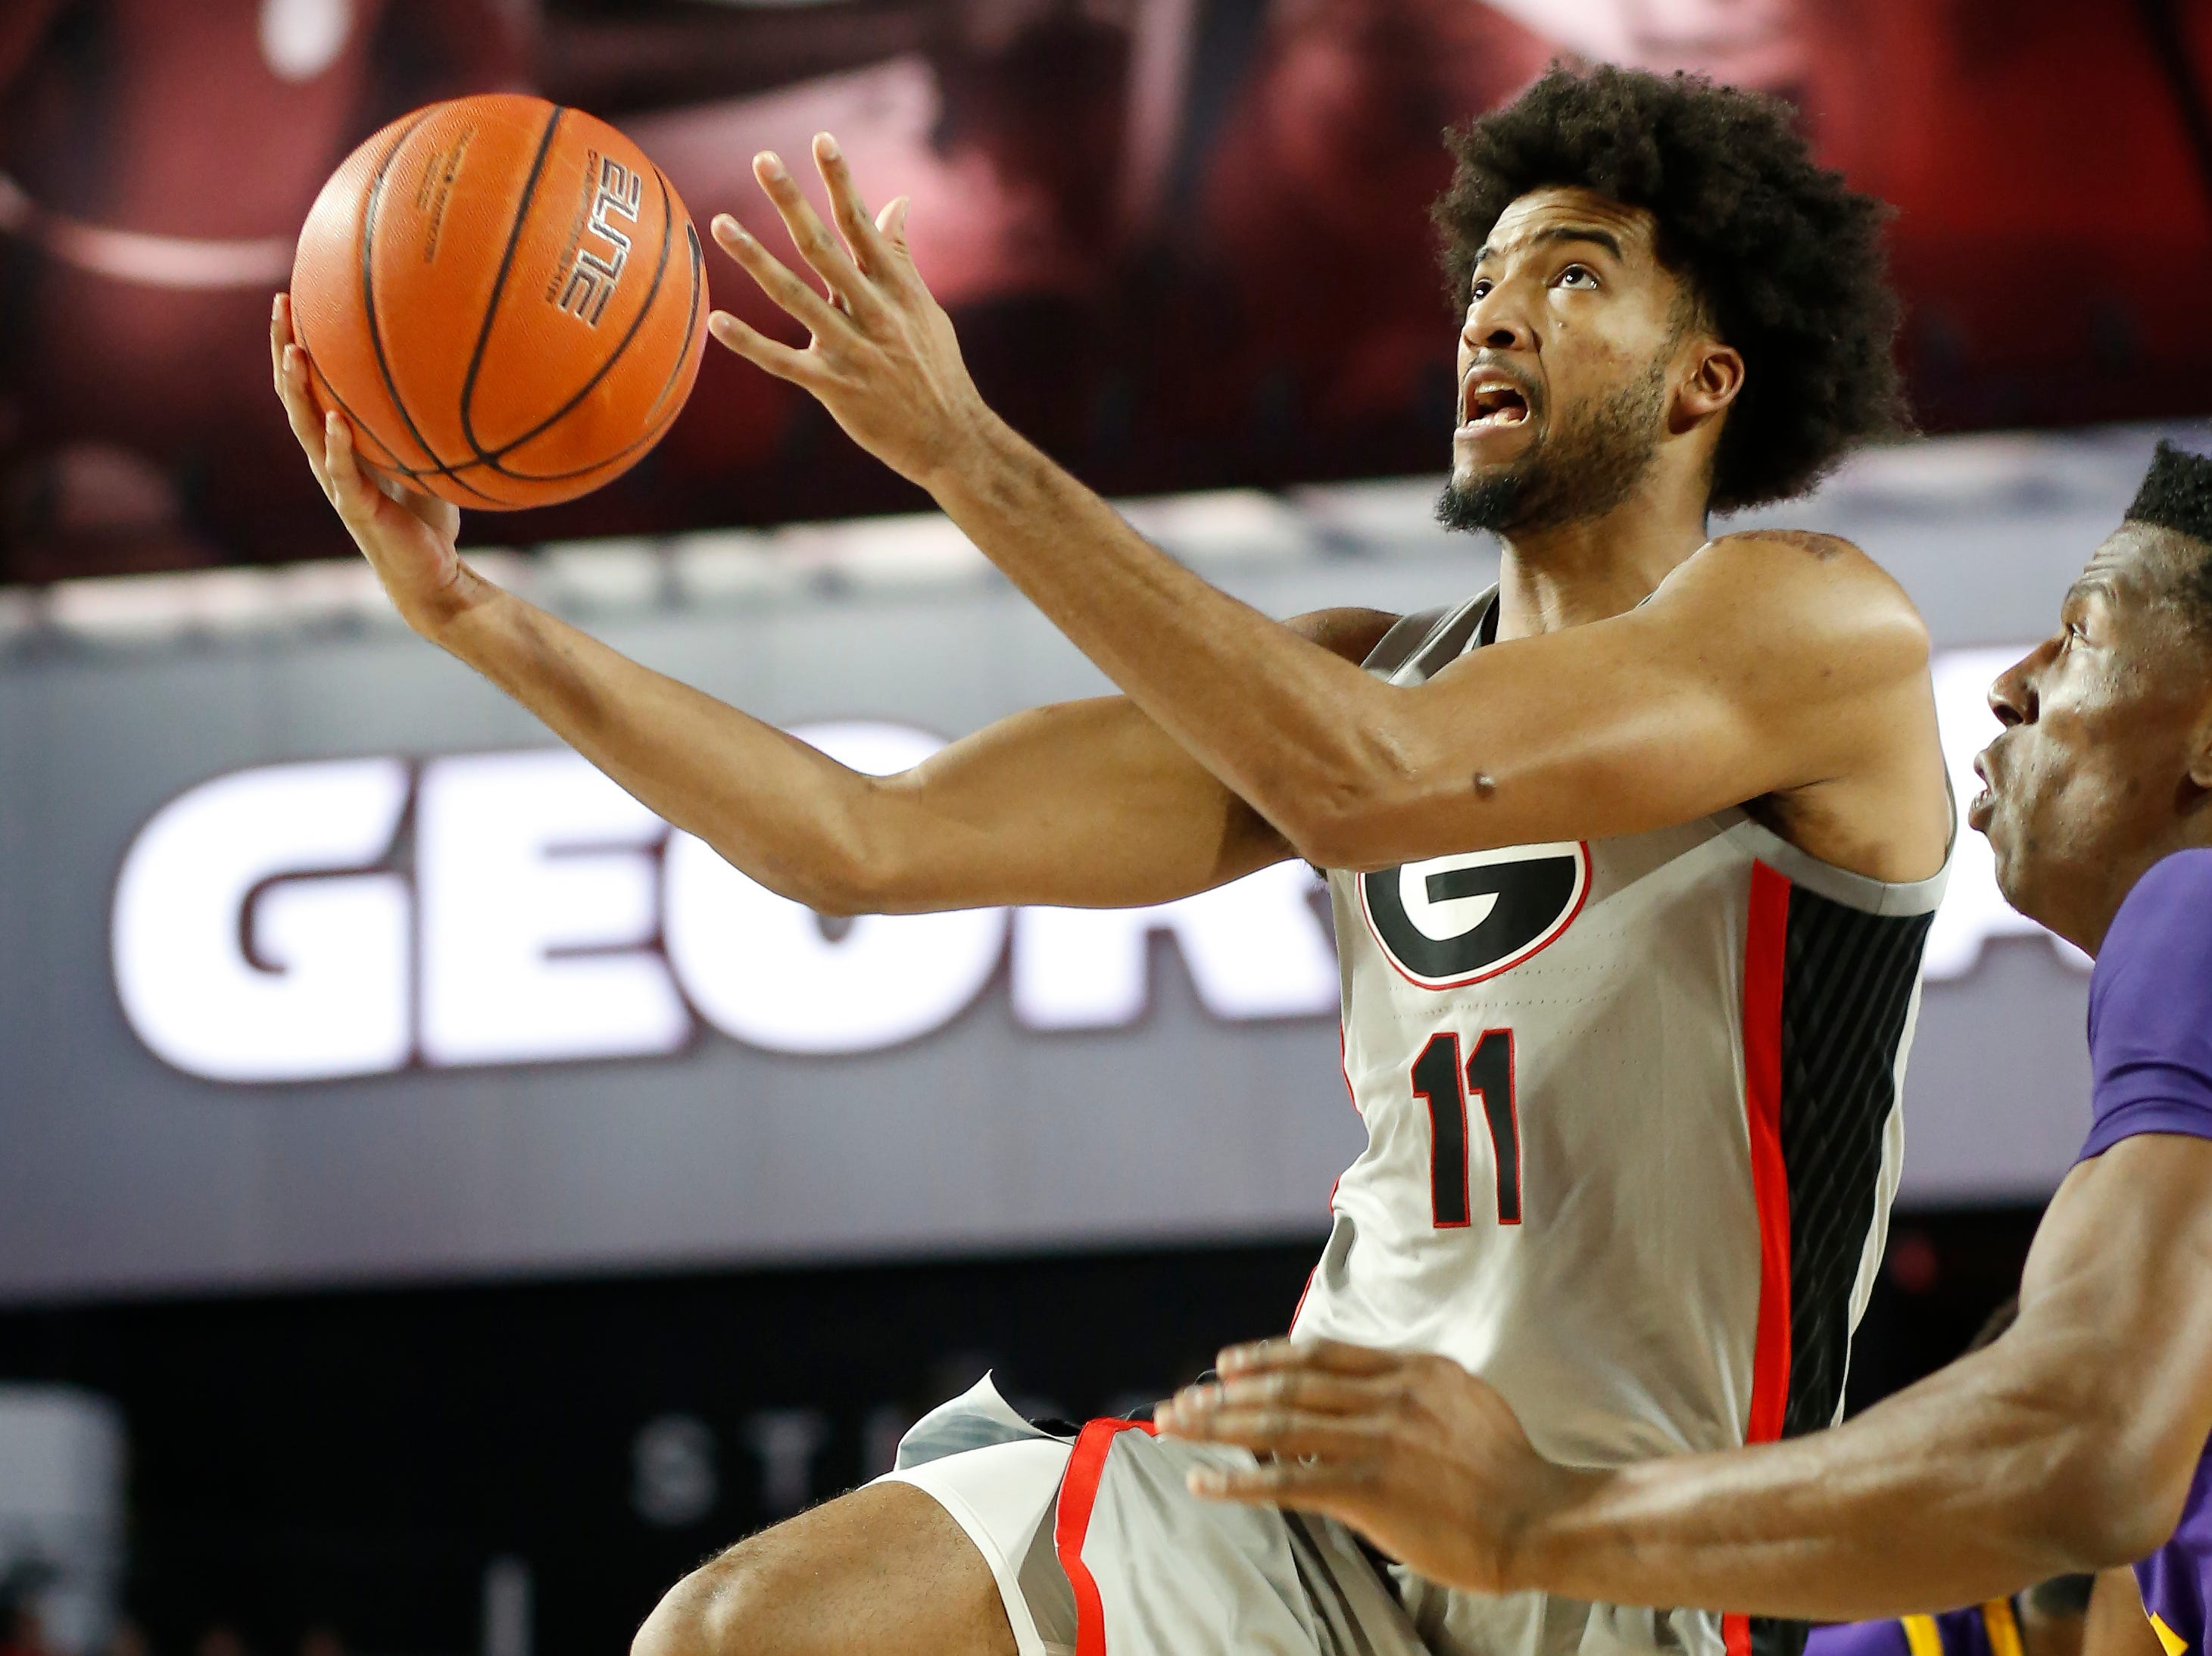 Georgia guard Christian Harrison (11) takes a shot past LSU forward Kavell Bigby-Williams (11) during an NCAA college basketball game in Athens, Ga., on Saturday, Feb. 16, 2019. (Joshua L. Jones/Athens Banner-Herald via AP)